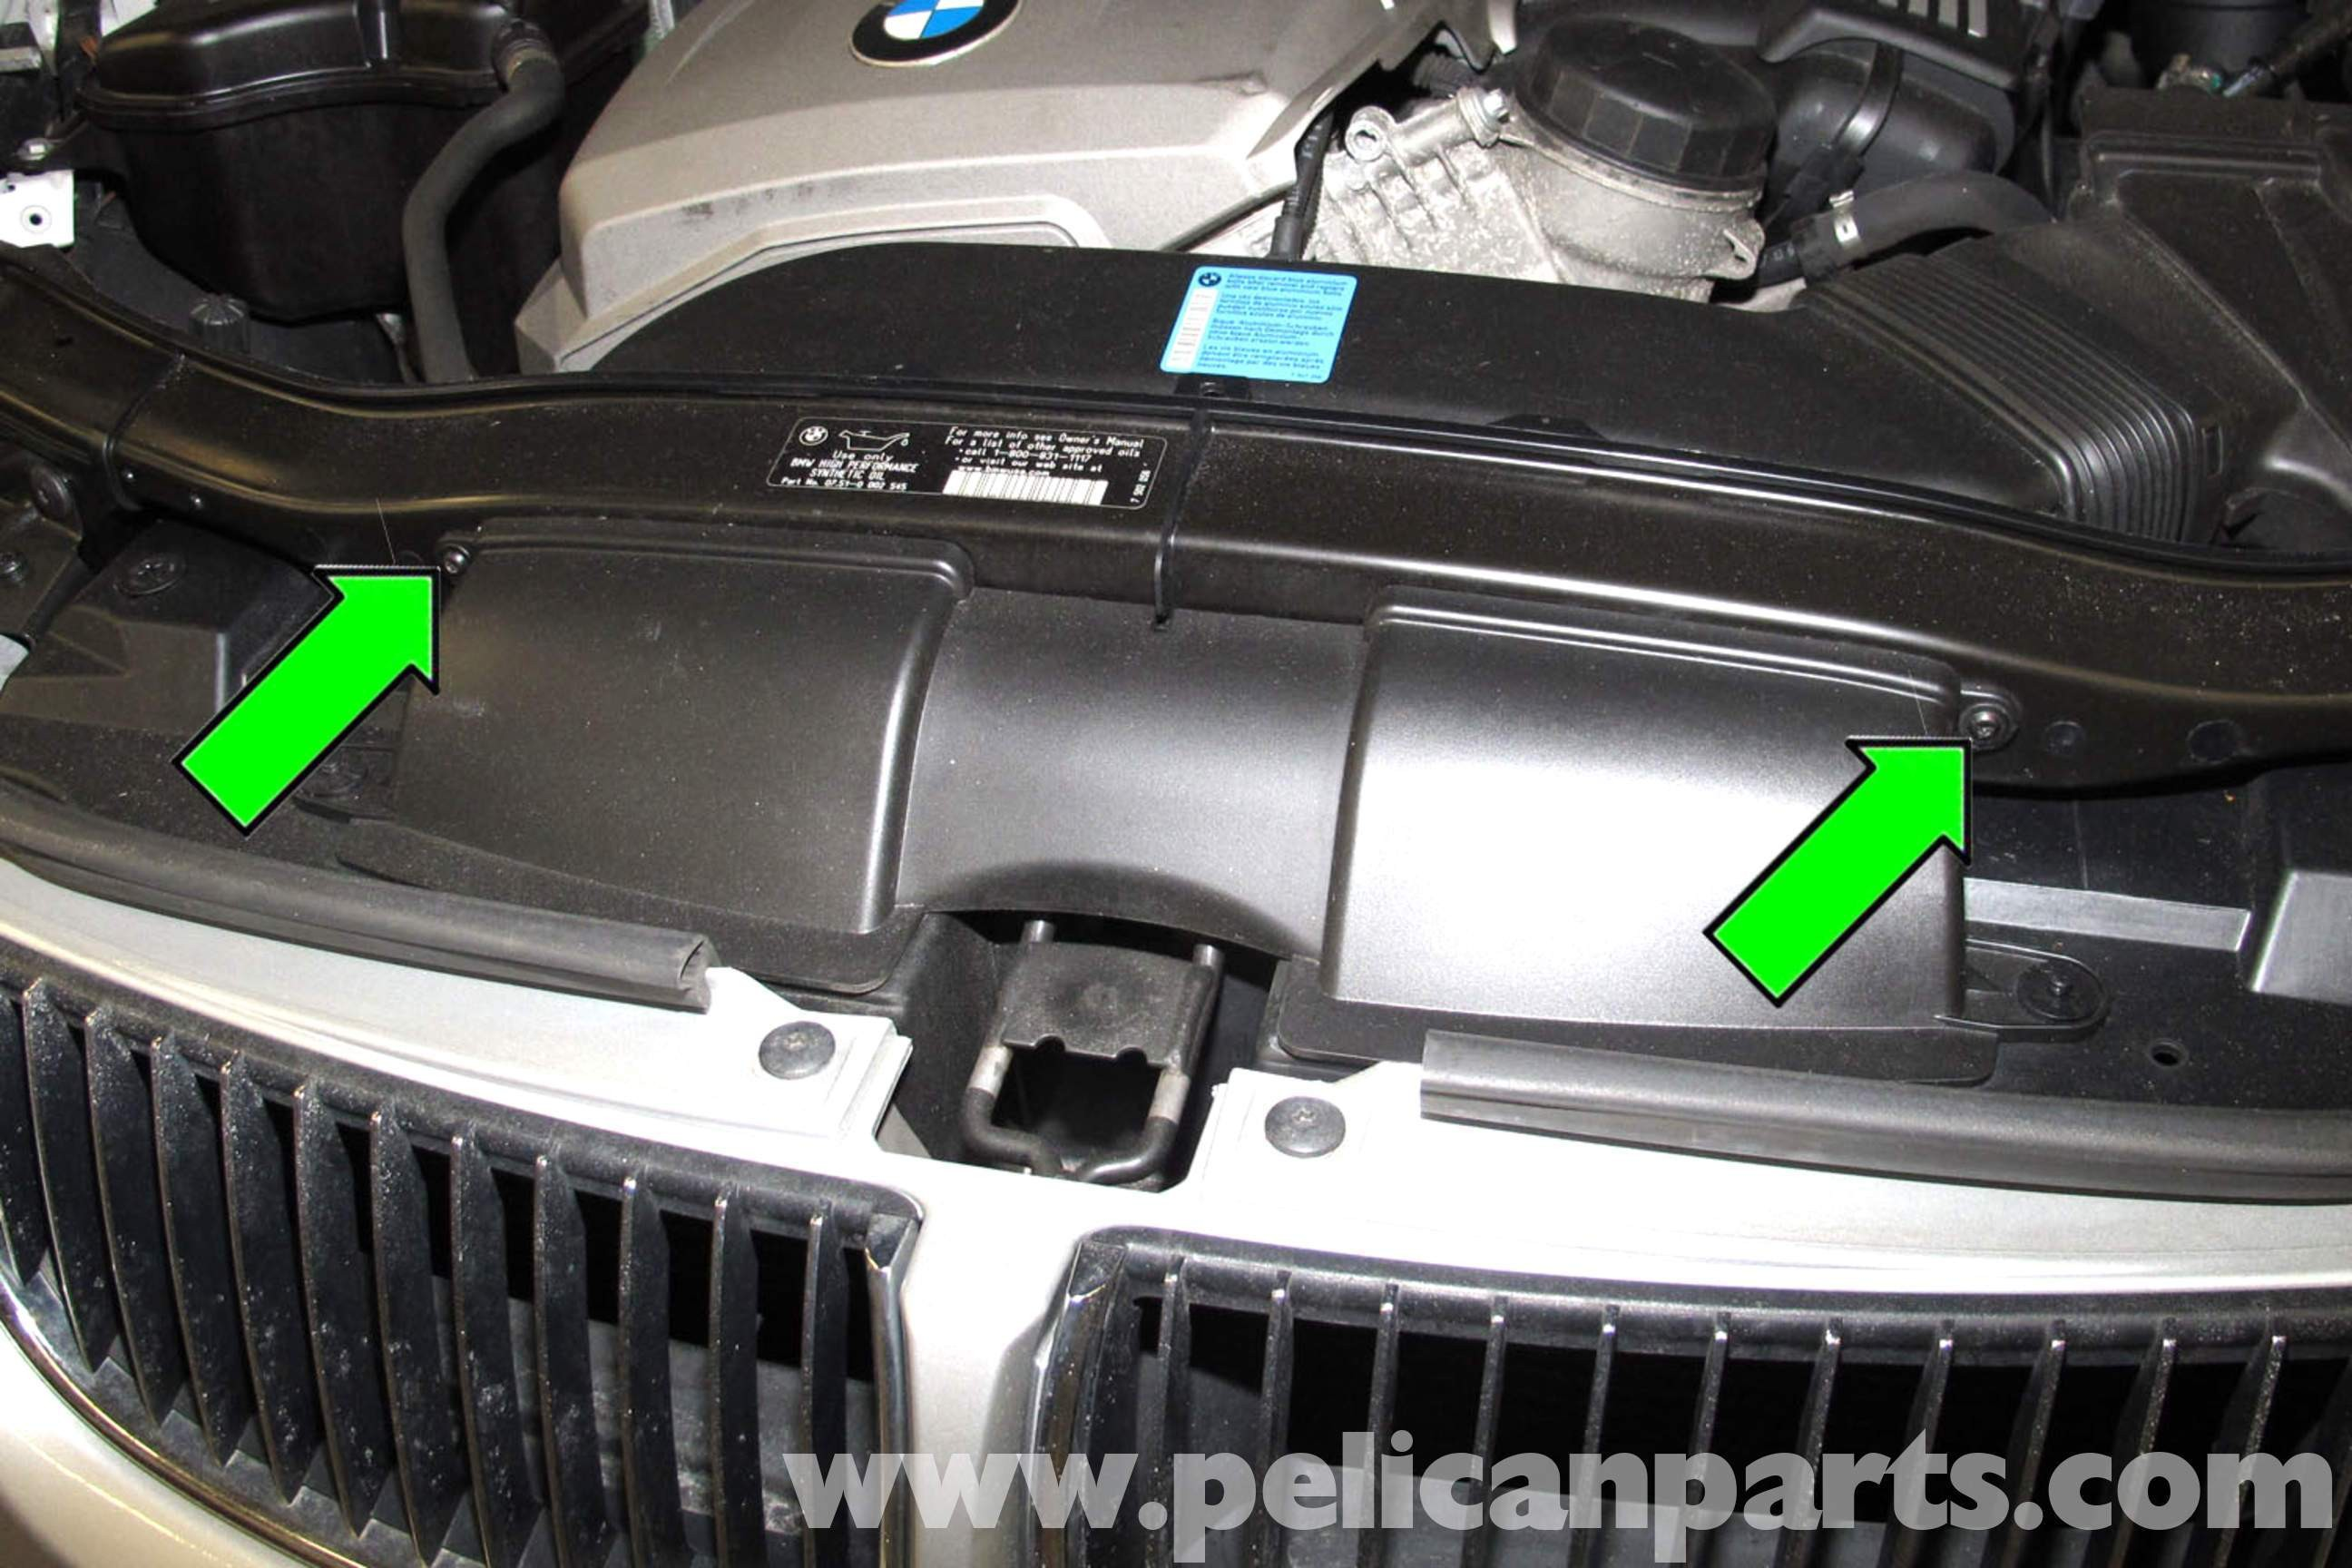 Diagram Of Under the Hood Of A Car 359f Bmw E92 Fuse Box Location Of Diagram Of Under the Hood Of A Car